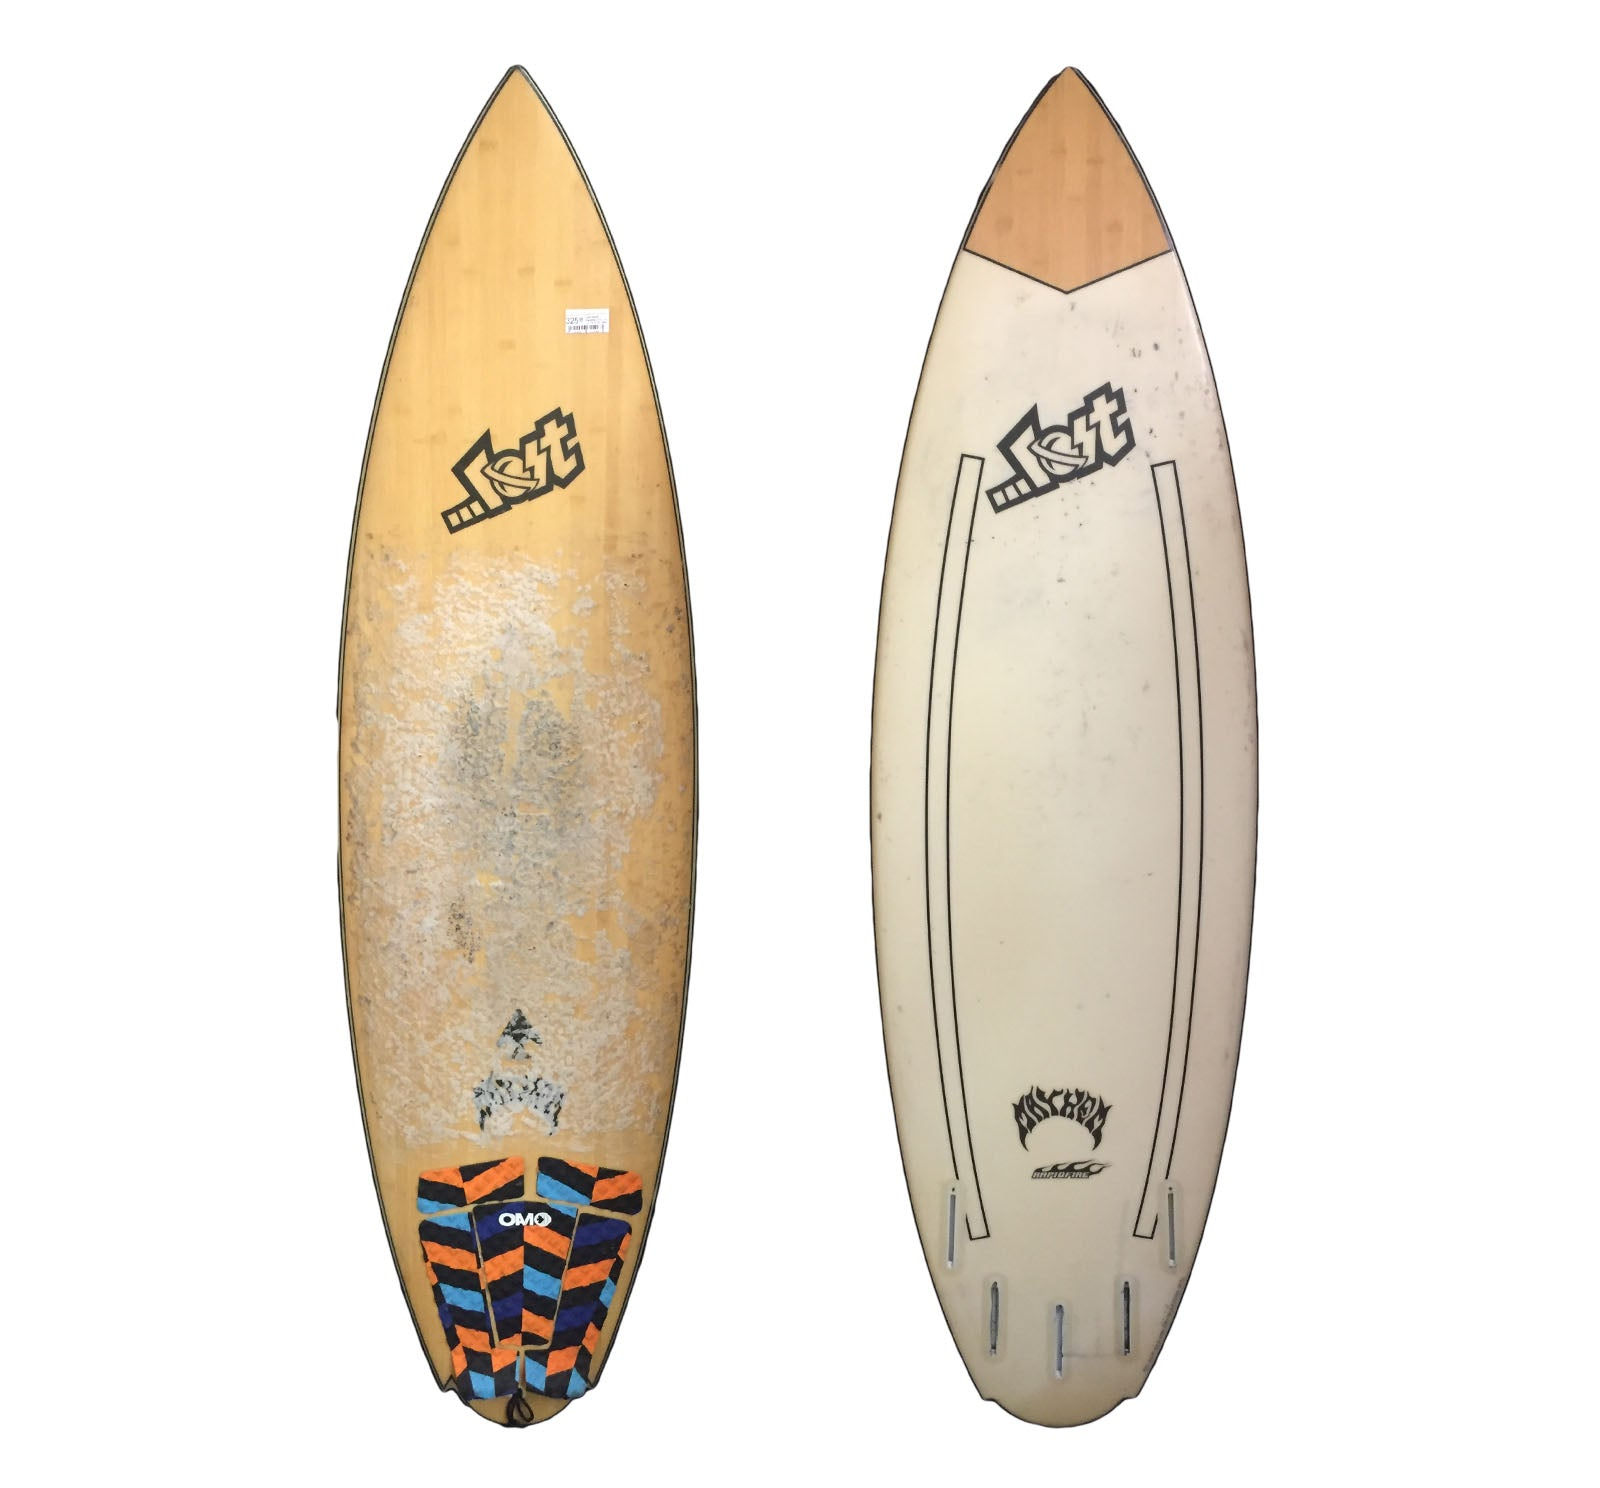 Lost Stealth 5'10 Used Surfboard